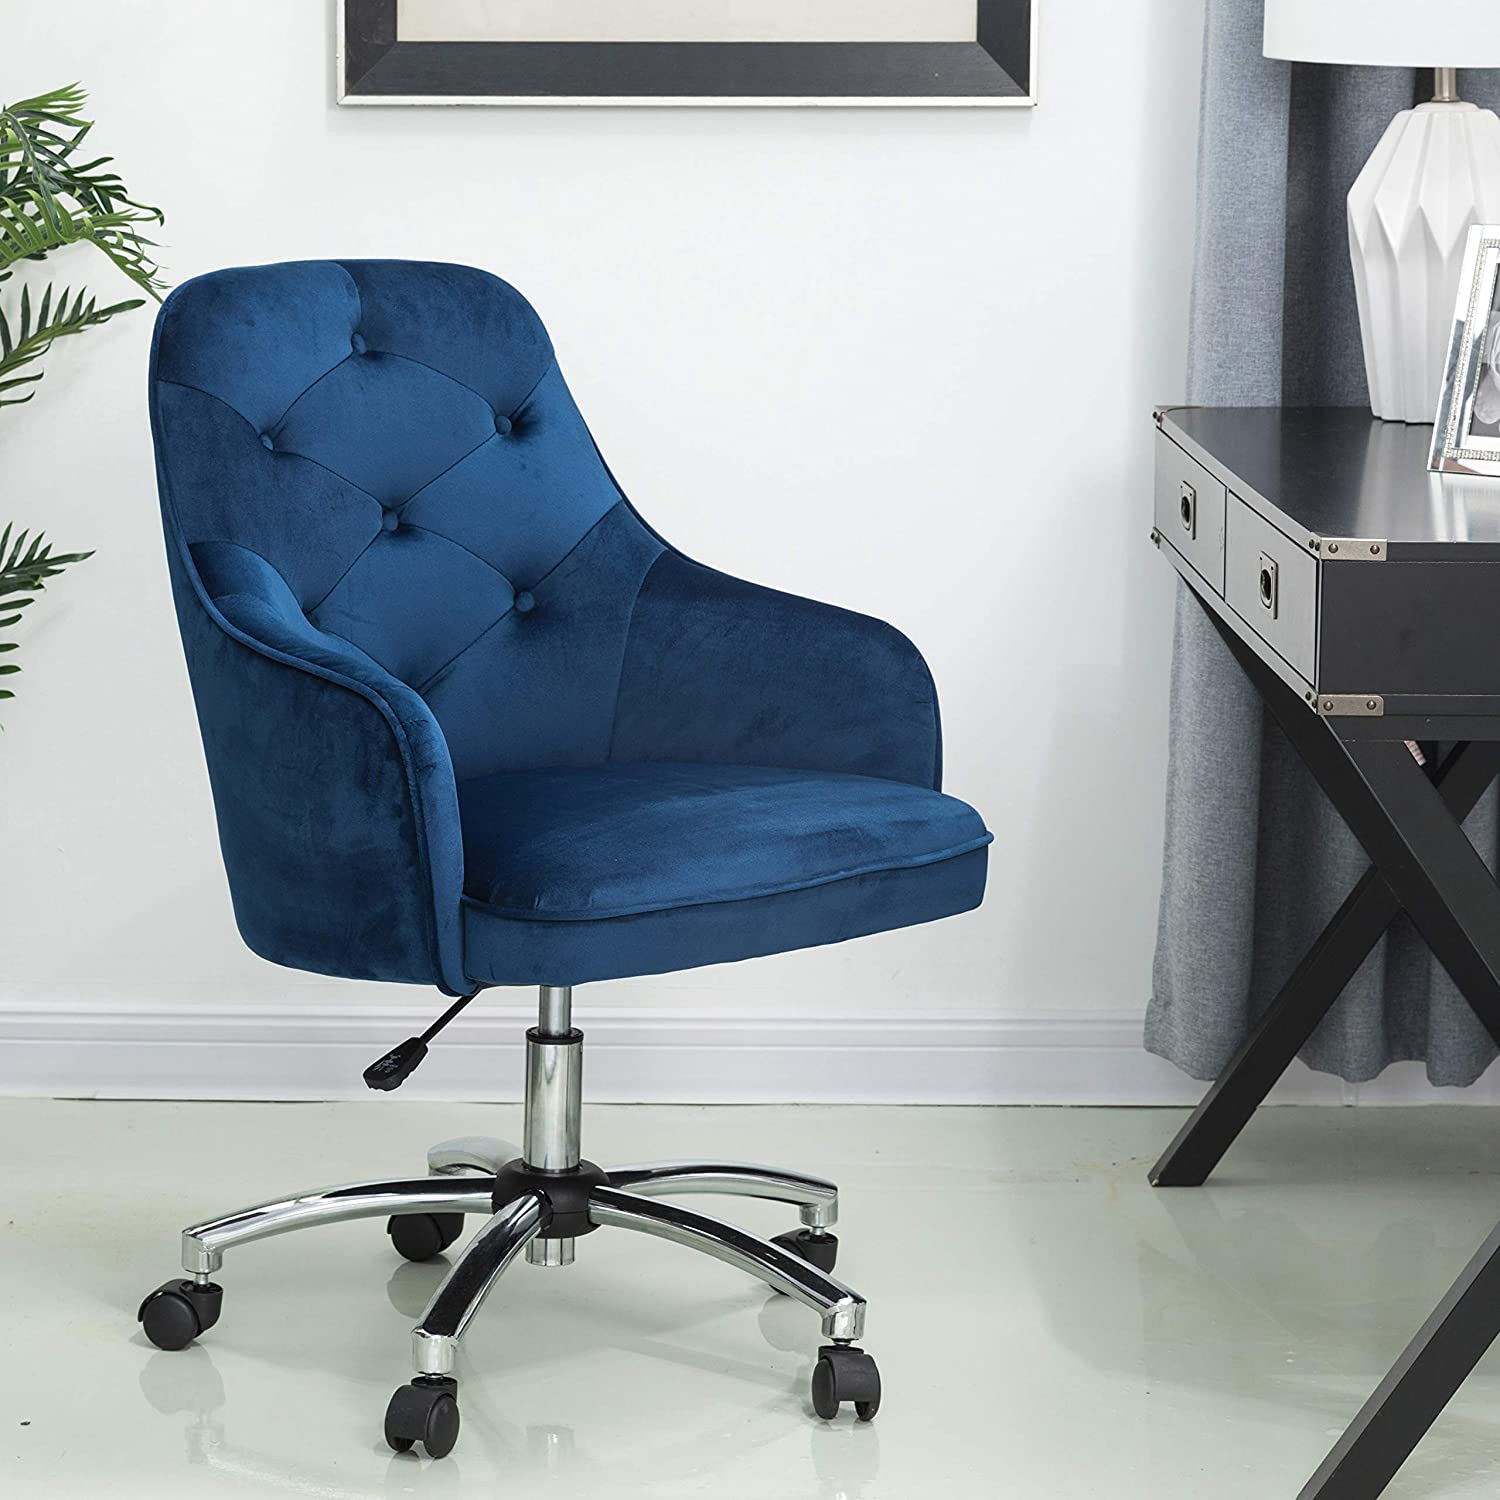 Glitzhome Home Office Chair Adjustable Mid-Back Velvet Ergonomic Desk Chair Comfortable Computer Chair with Lumbar Support Modern Rolling Swivel Chair with Armrest, Navy Blue